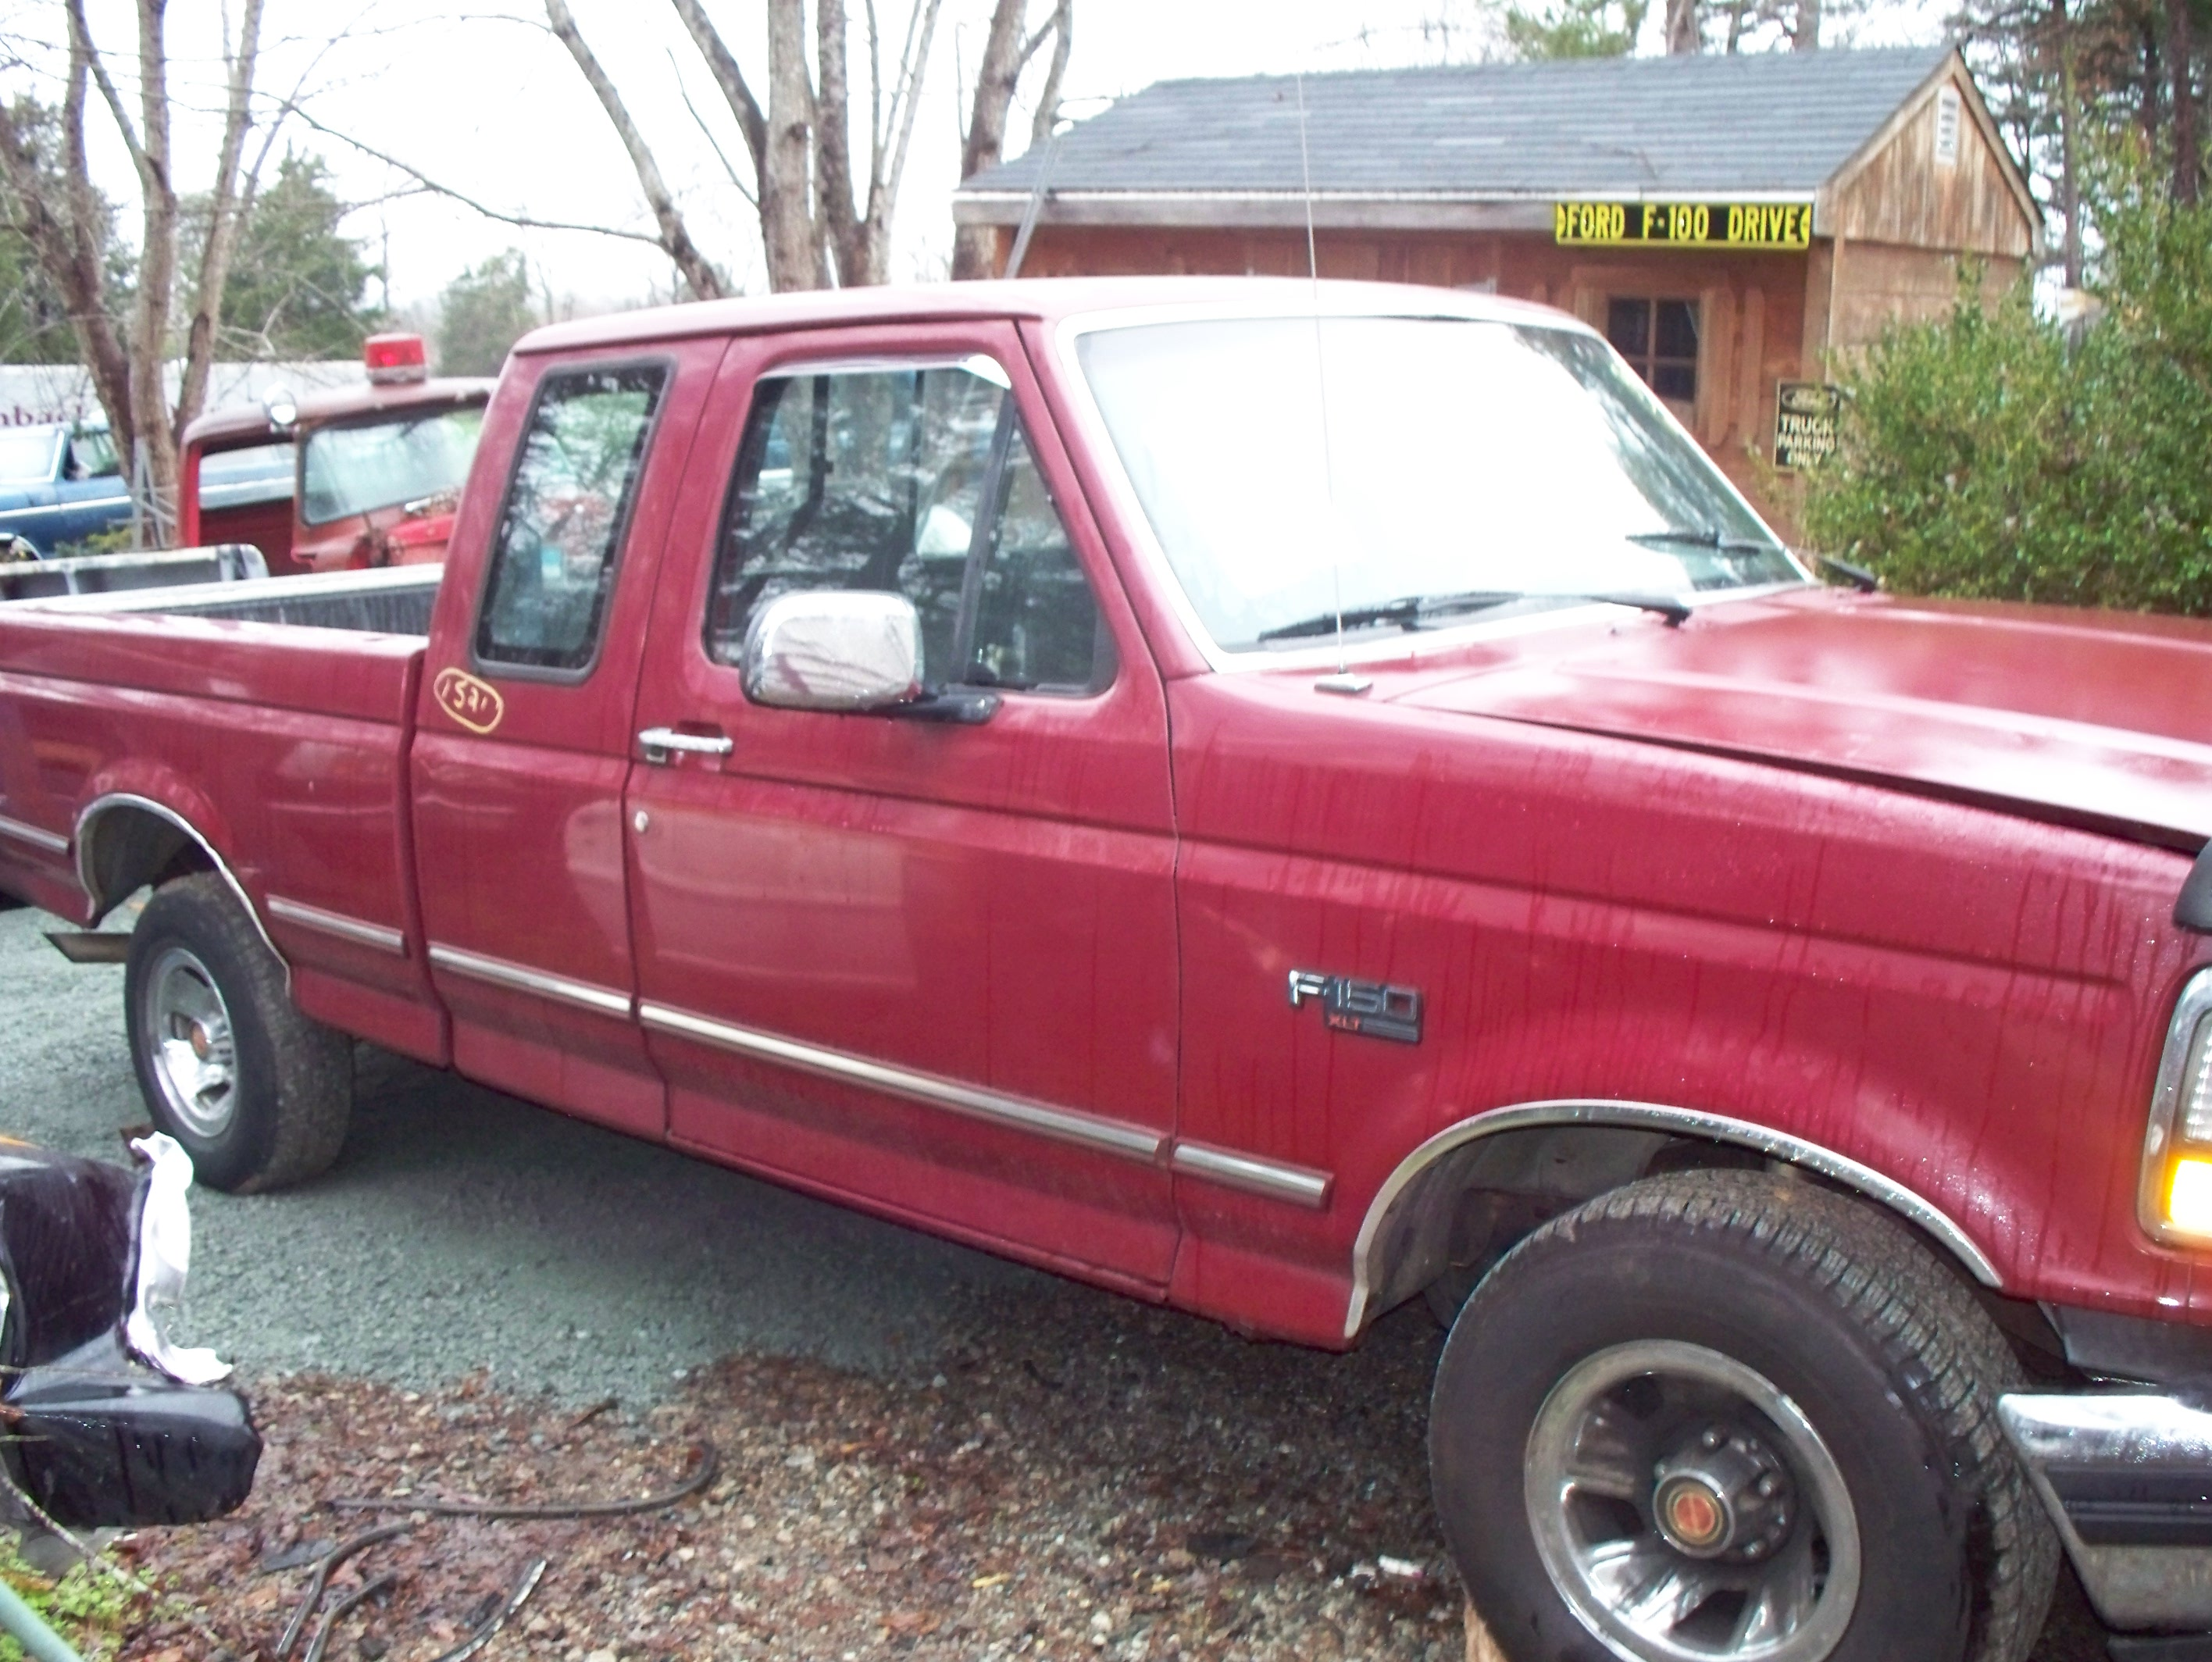 1994 F-150 all sheet metal is very clean Bad motor/trans brought in 12/24/15 gray door panels already sold 12/26/15 & Flashback F100u0026#39;s - New Arrivals of Whole Trucks/Parts Trucks ... pezcame.com